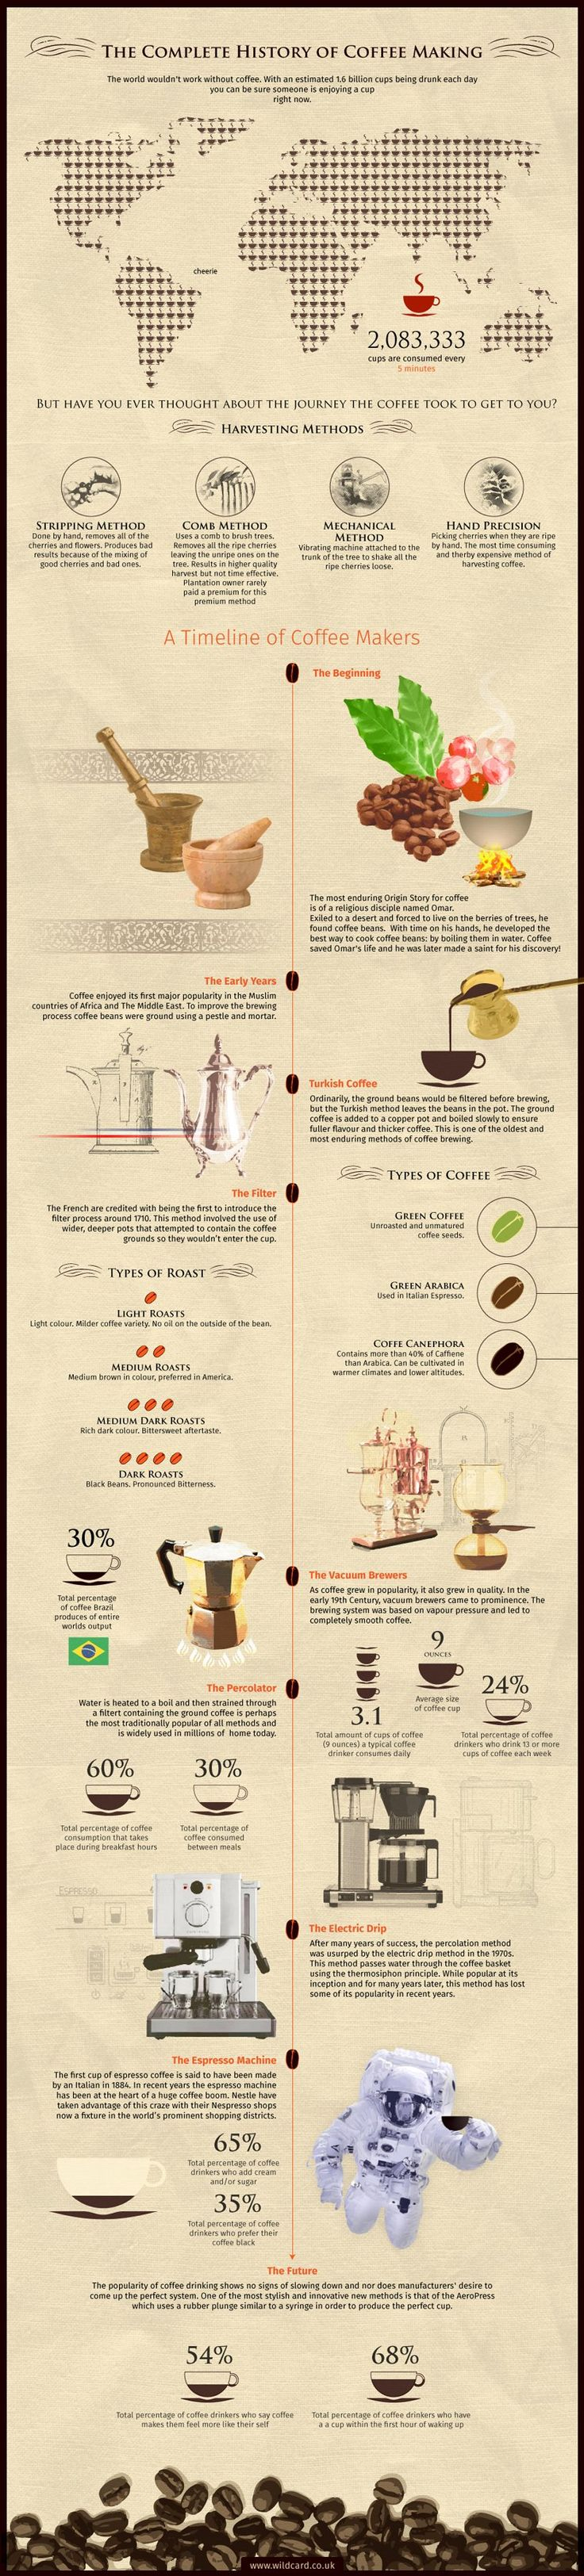 The Complete History of Coffee Making in One Infographic: